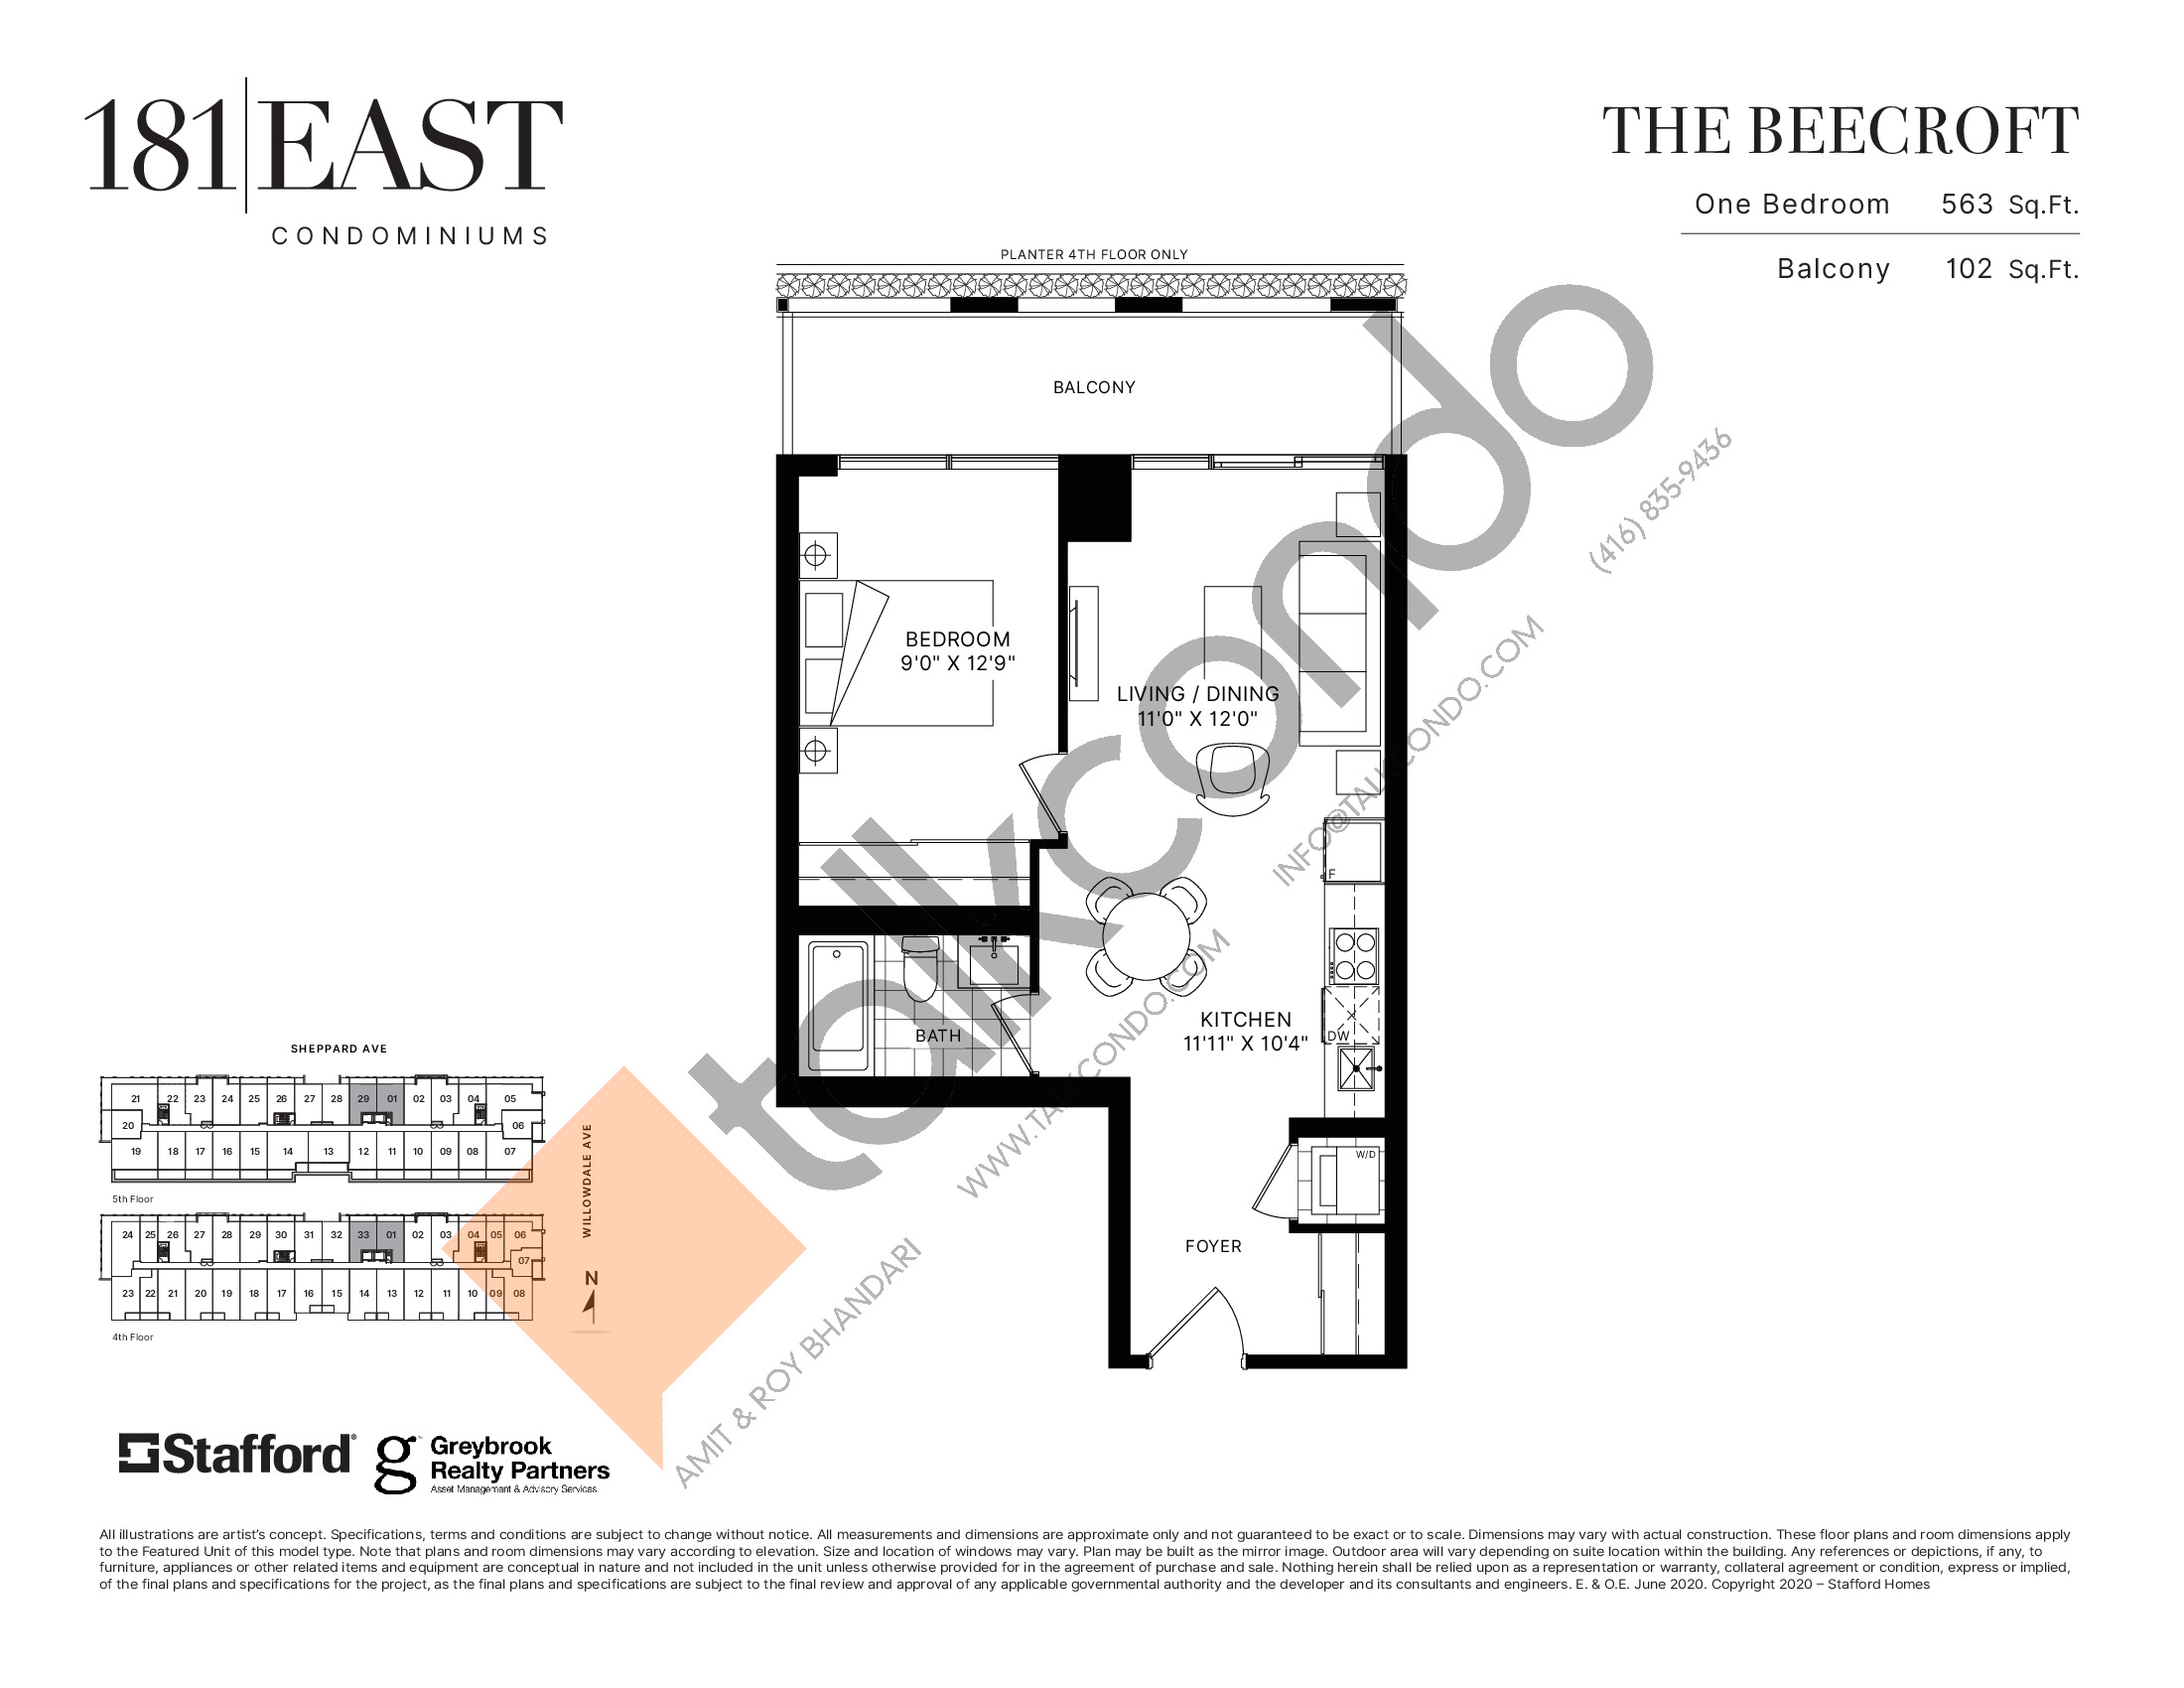 The Beecroft Floor Plan at 181 East Condos - 563 sq.ft